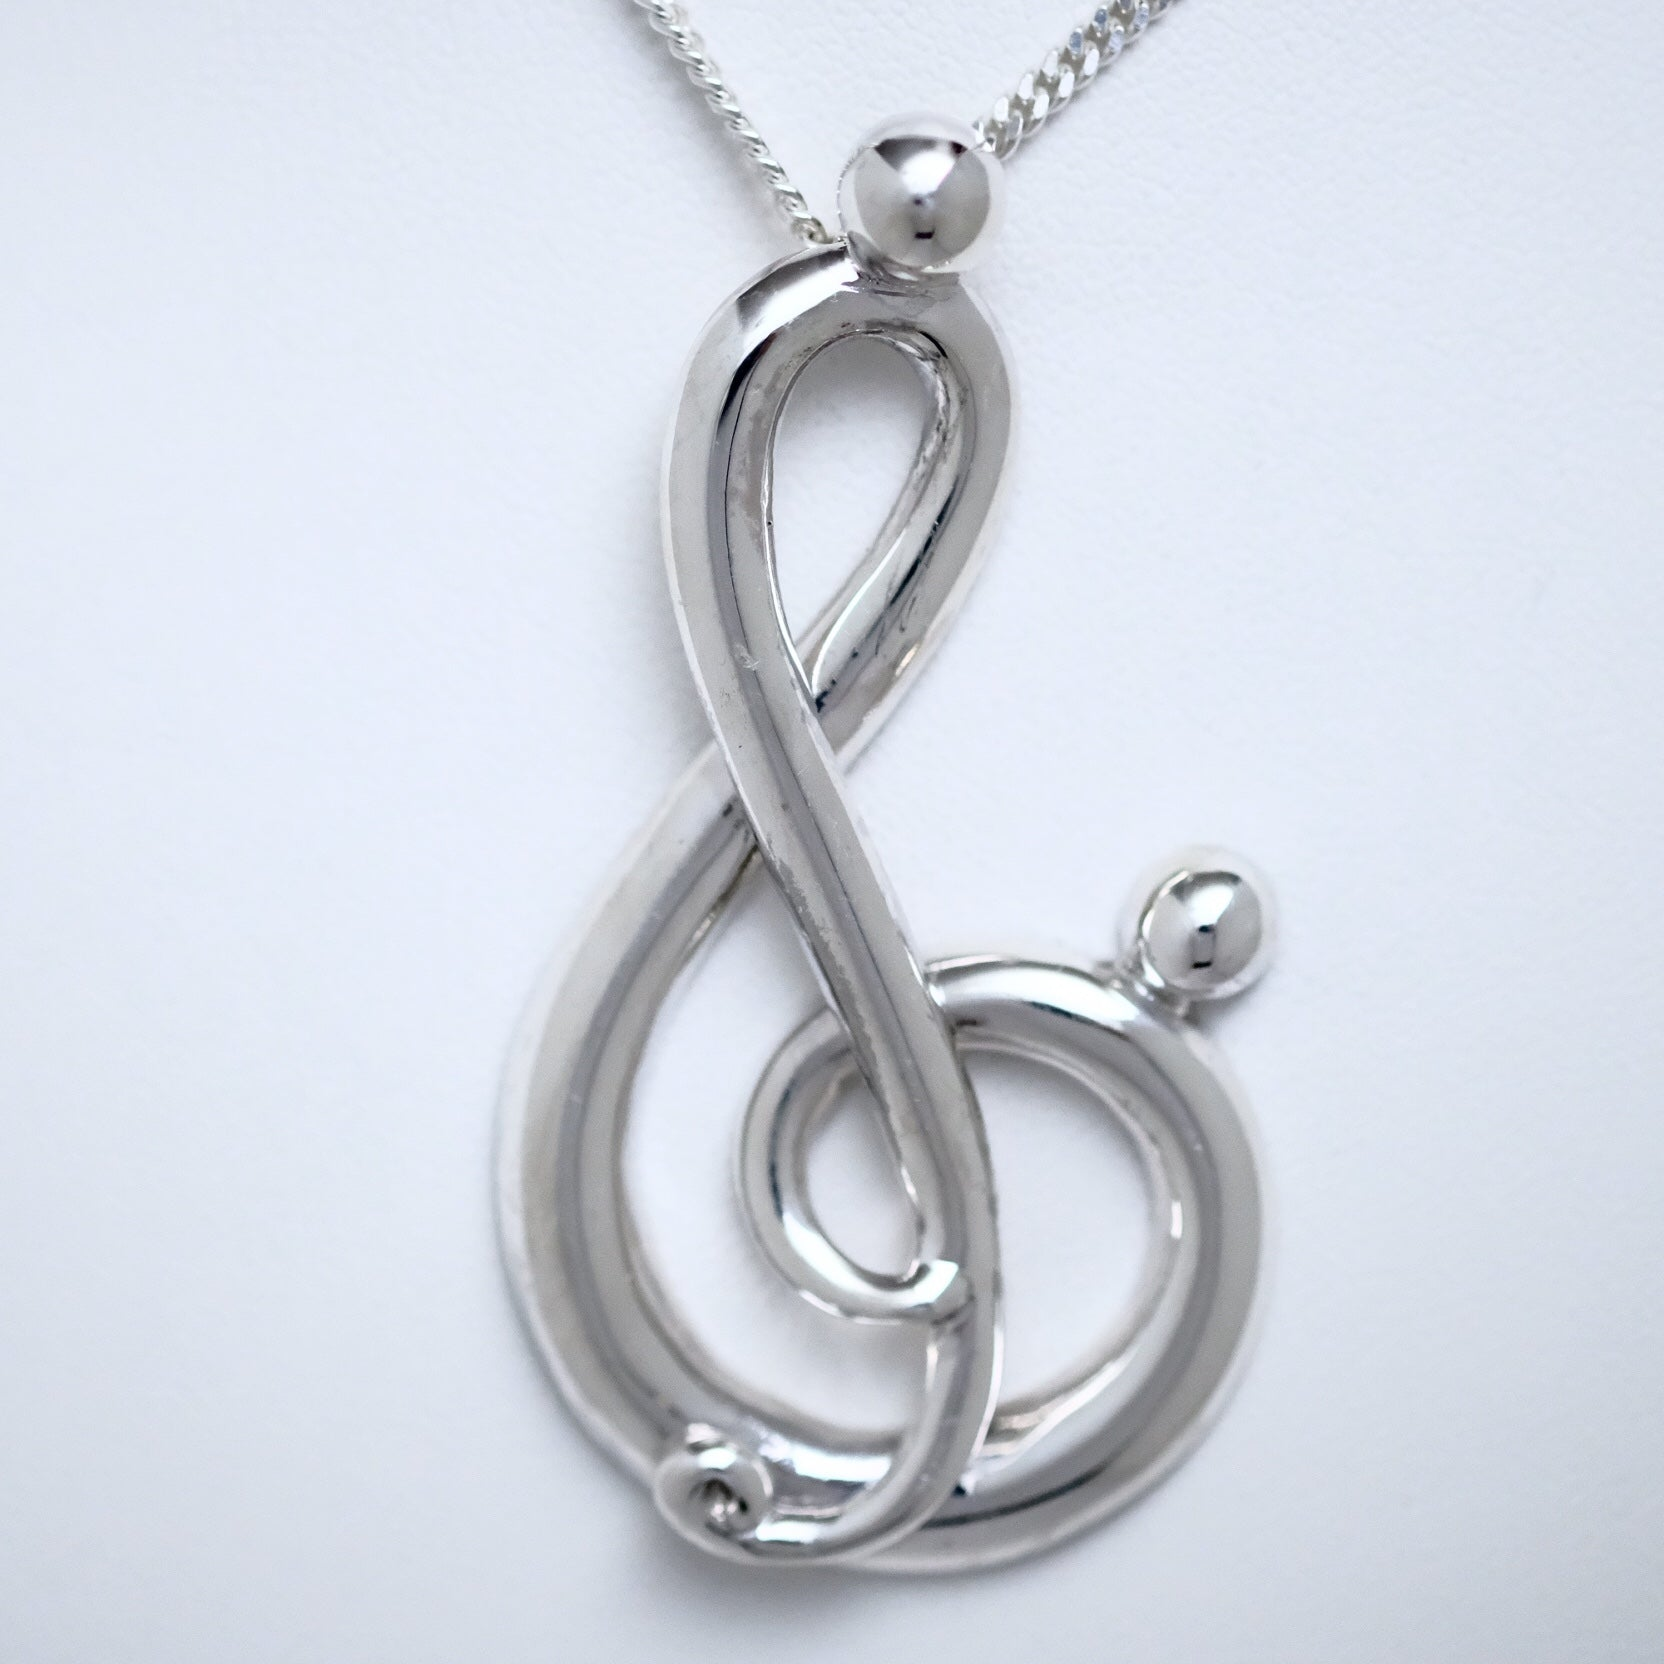 Melody of Love half side extra large sterling silver pendant by Joseph Chiang